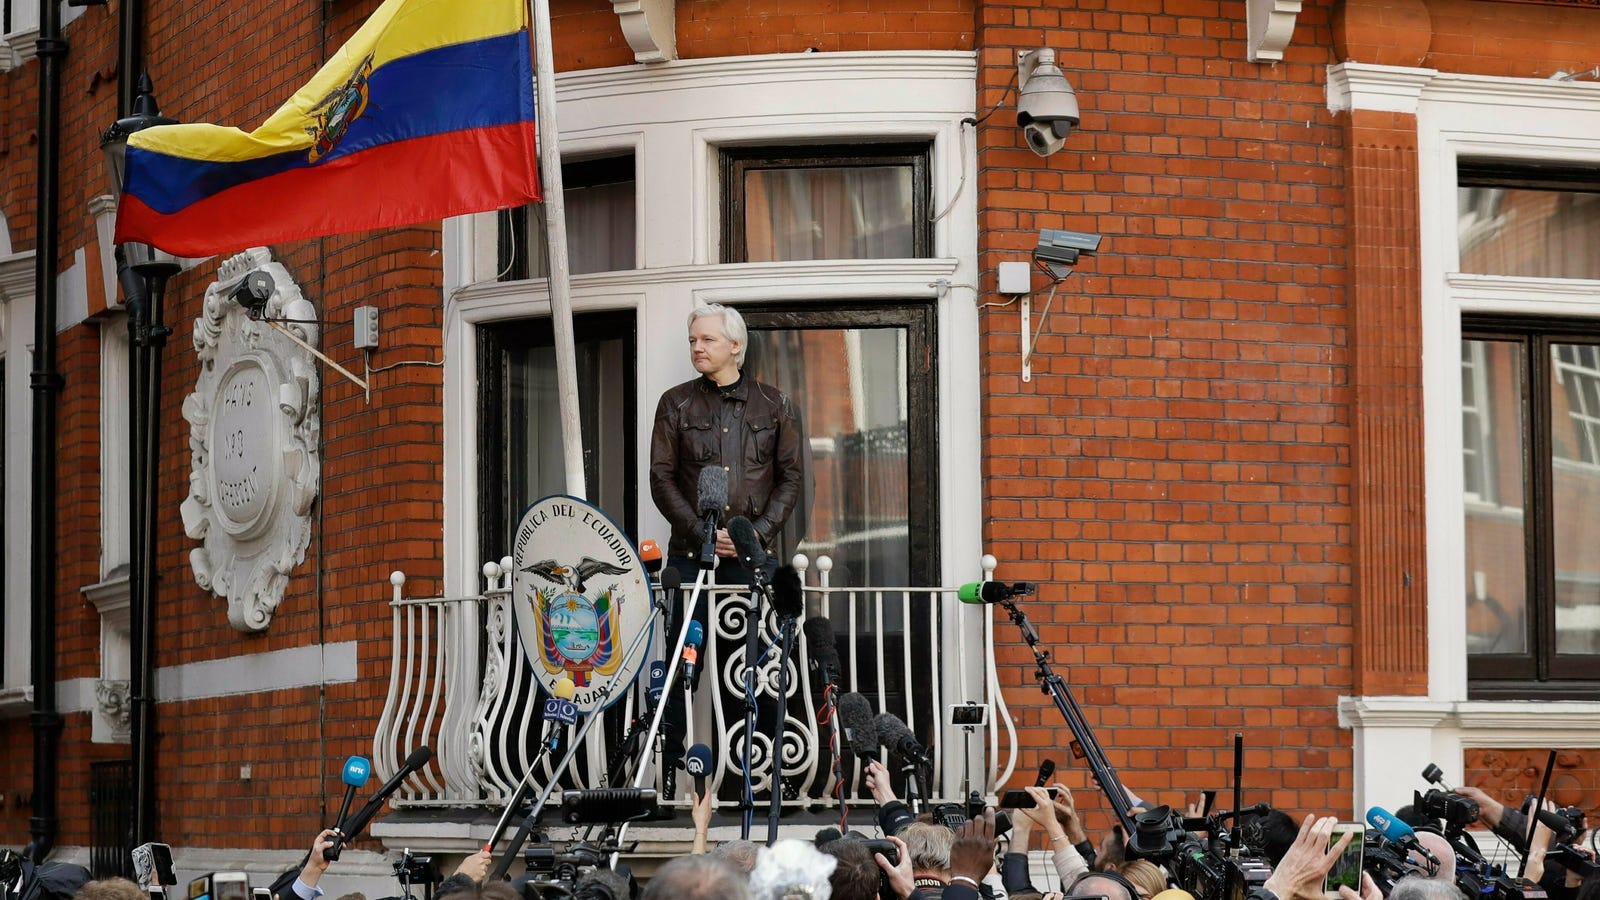 Ecuador Claims It's Been Hit With 40 Million Cyberattacks Since Giving Up Julian Assange